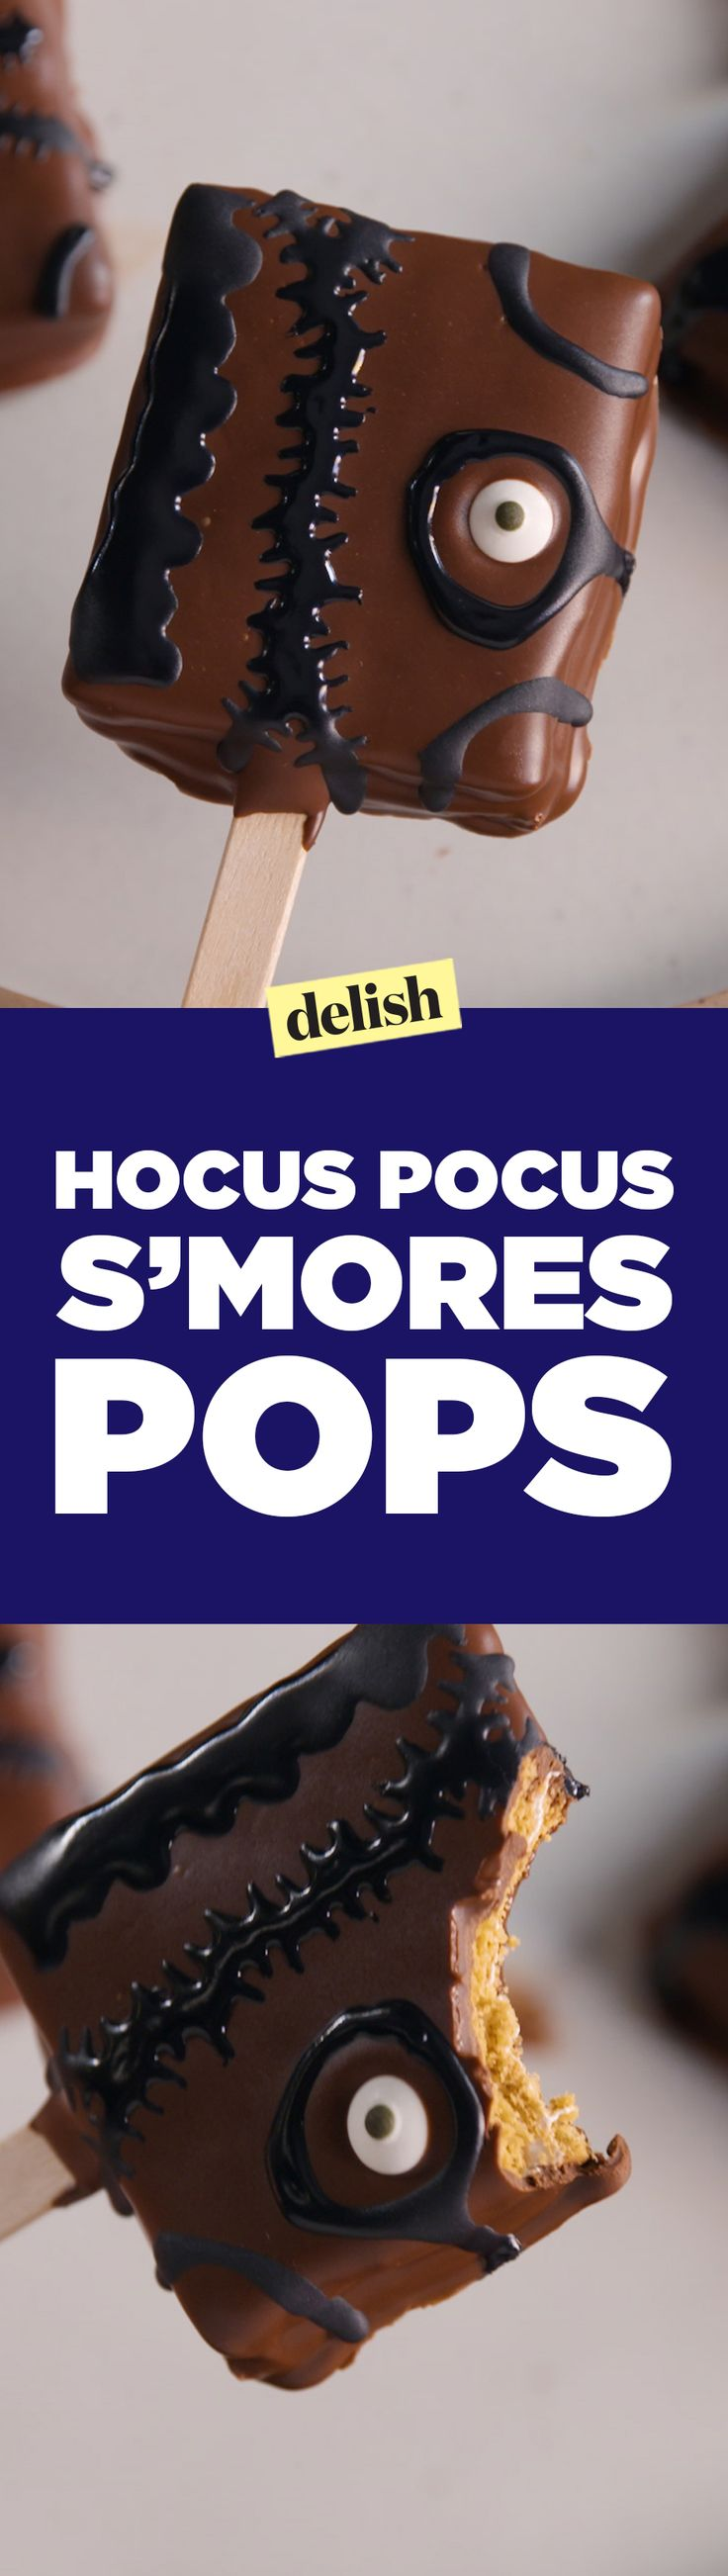 These 'Hocus Pocus' s'mores pops will definitely put a spell on you. Get the recipe on Delish.com.